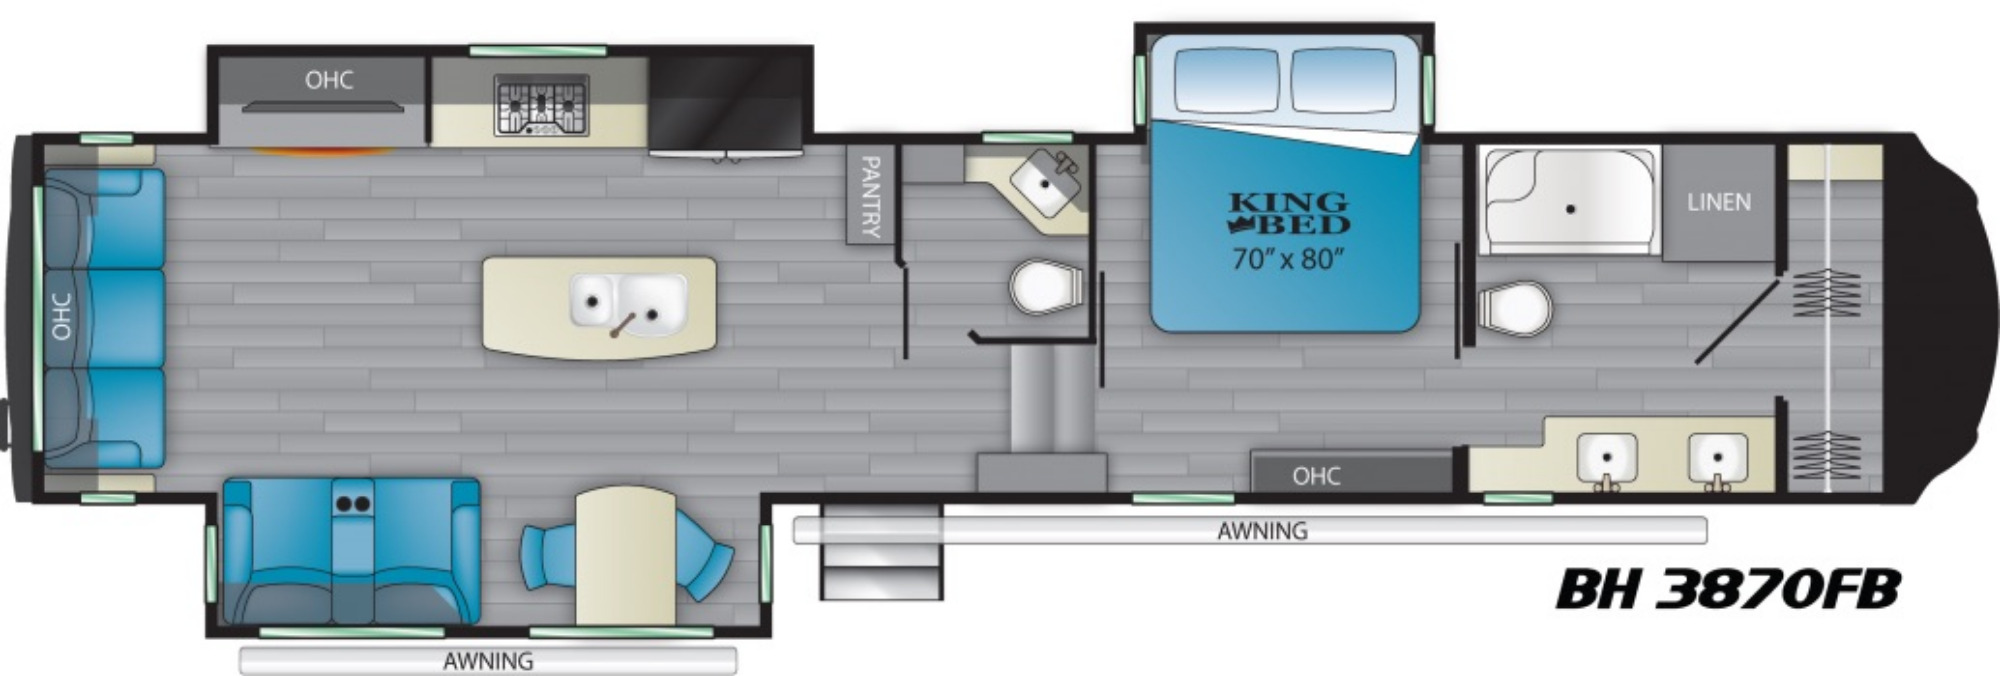 View Floor Plan for 2021 HEARTLAND BIGHORN 3870FB